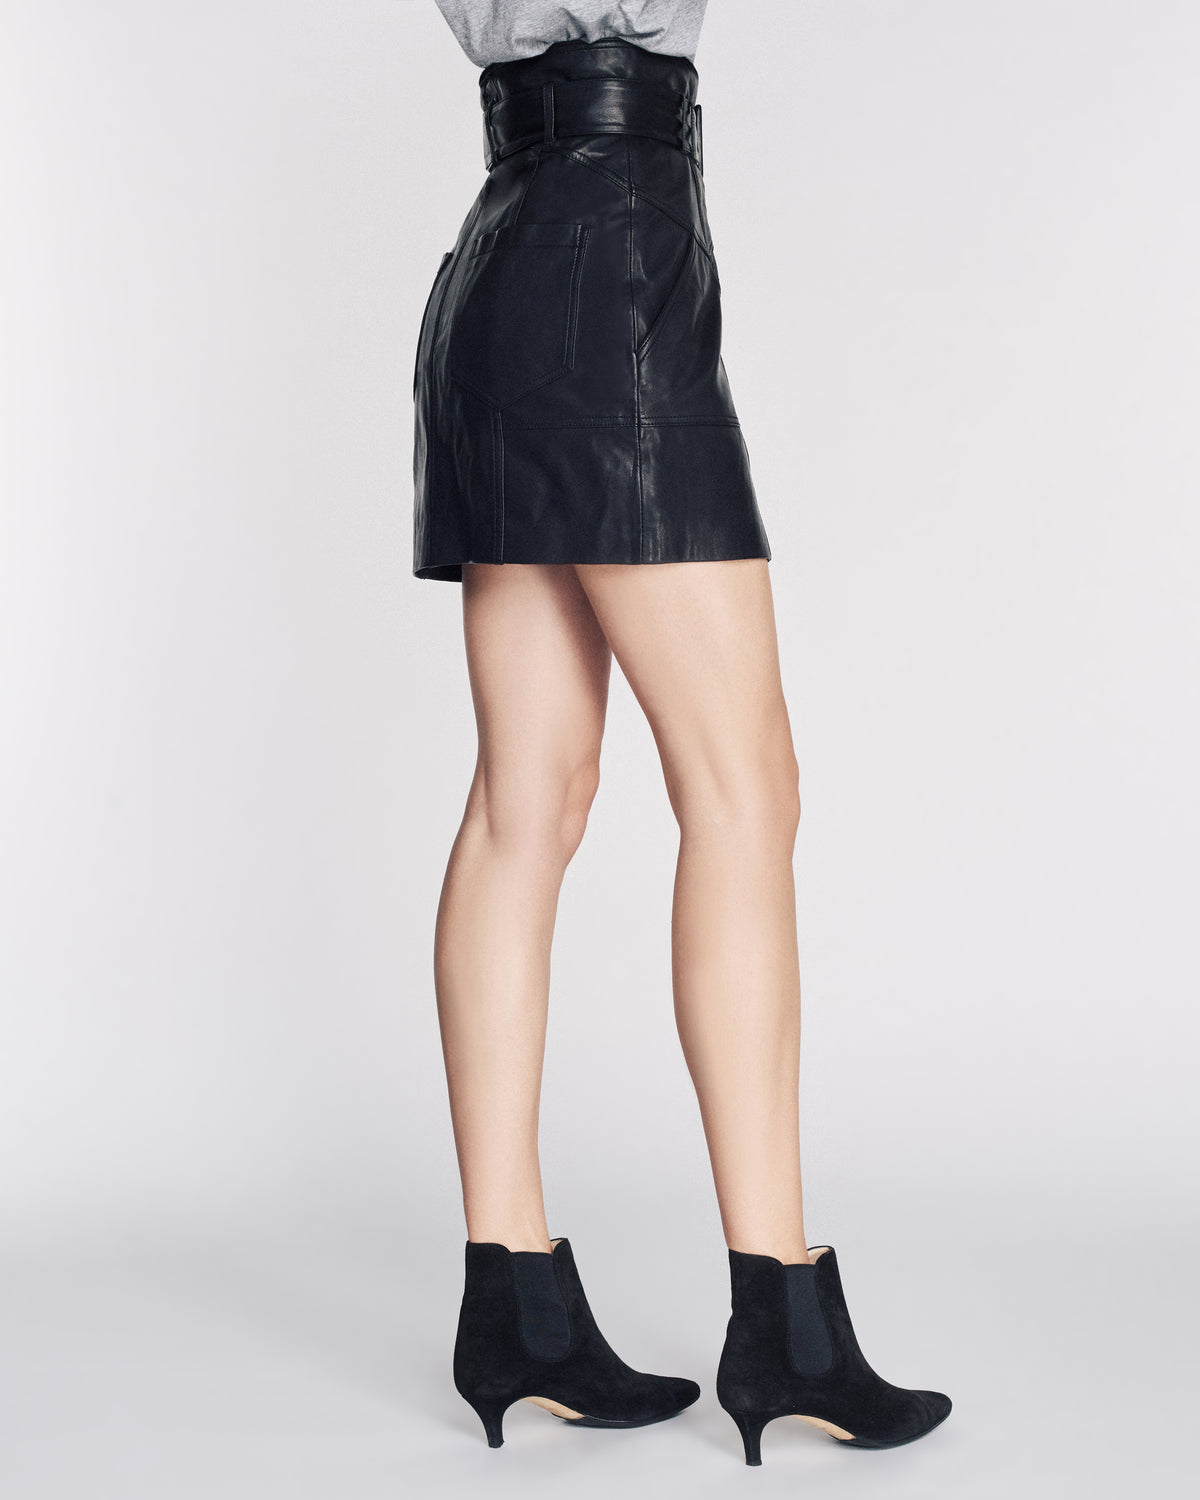 Claire Leather Skirt in Black